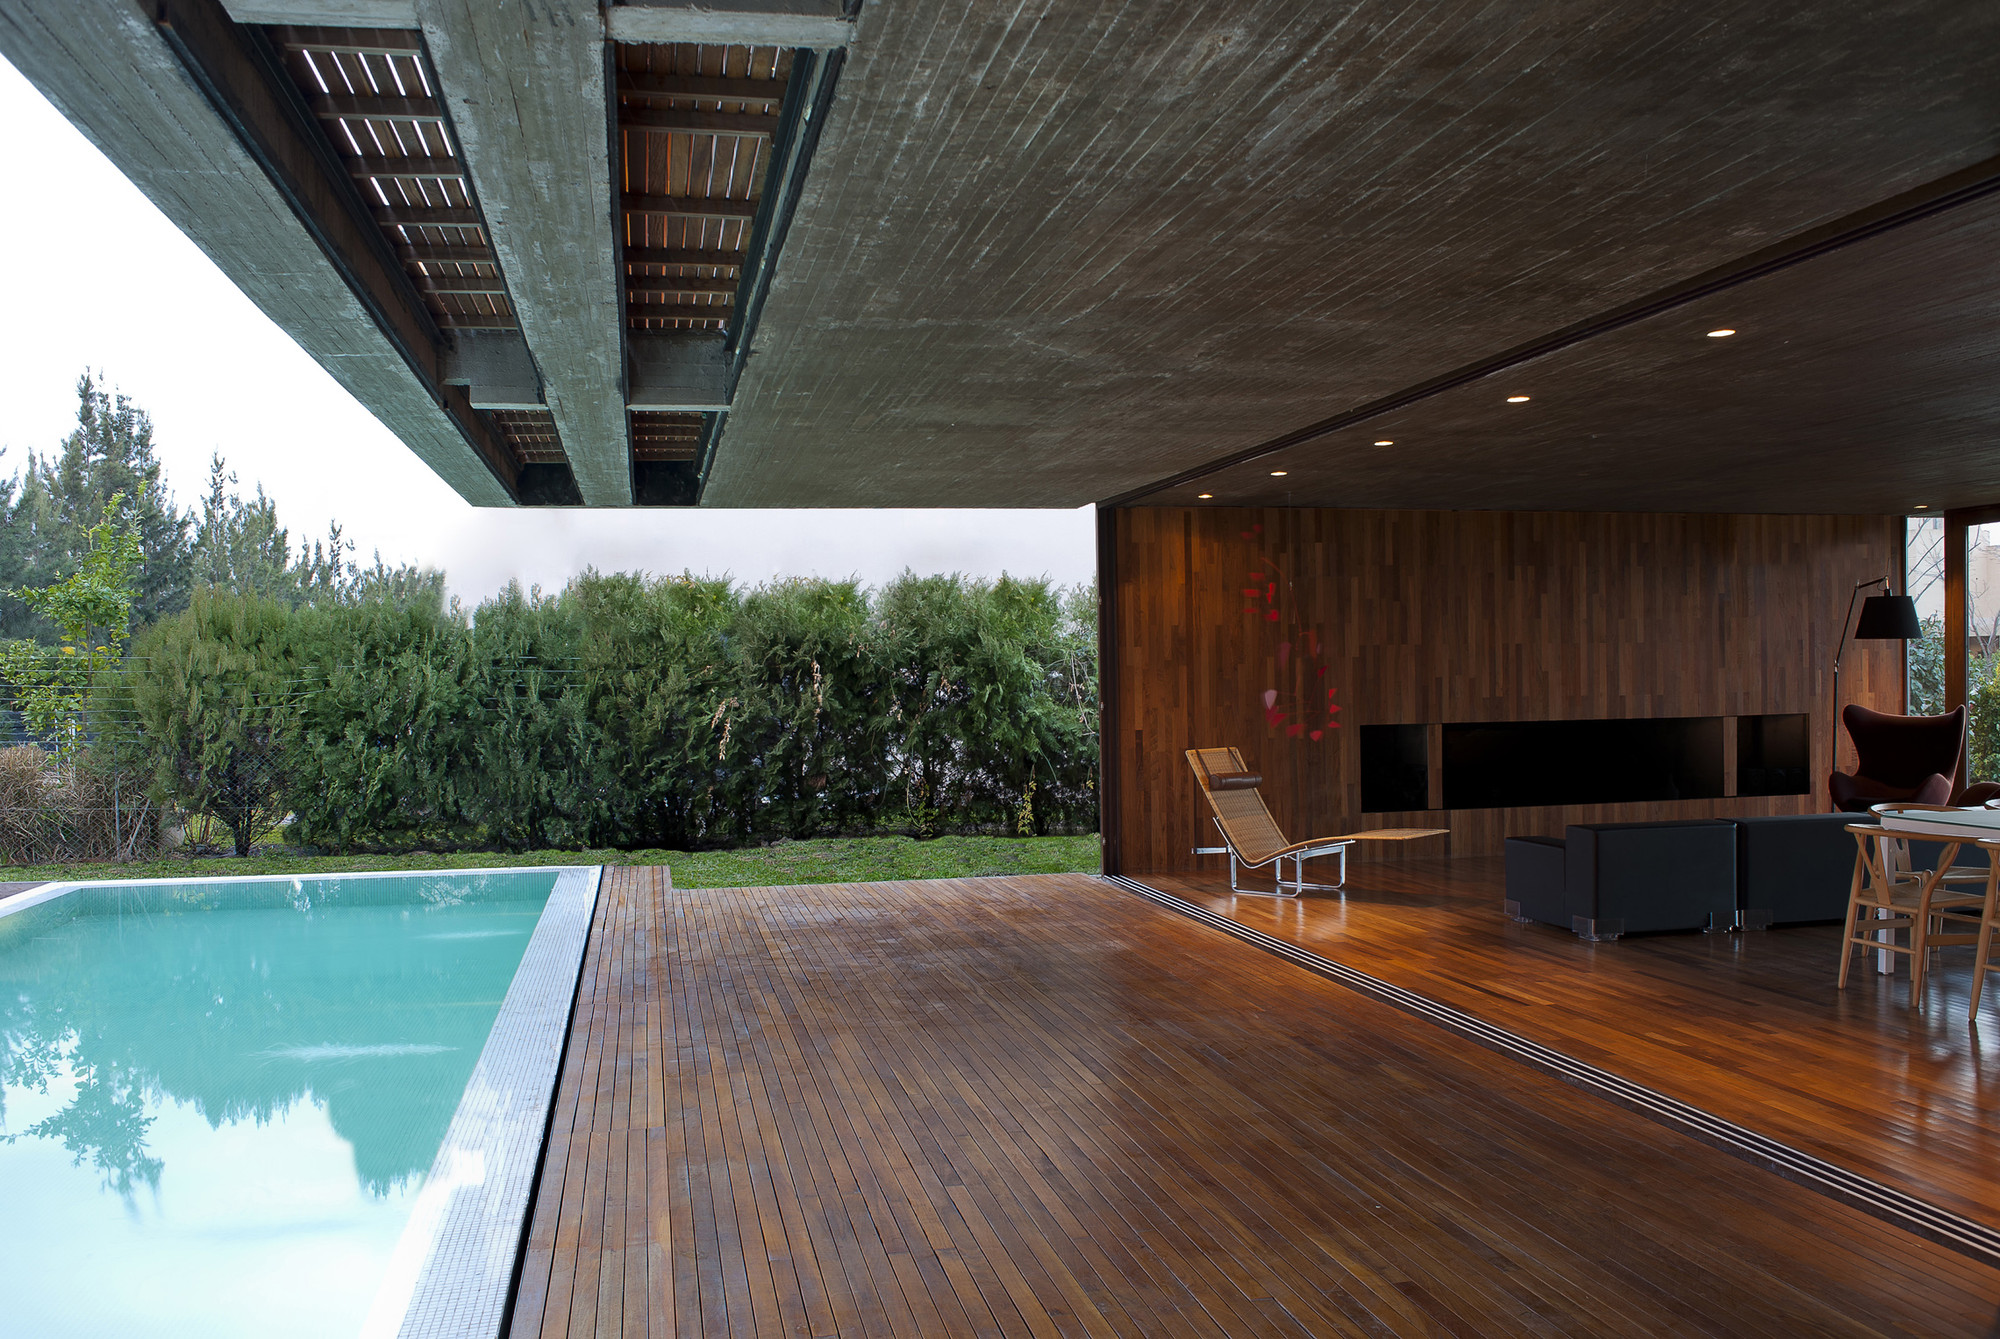 Gallery Of House Ff Fritz Fritz Arquitectos 7